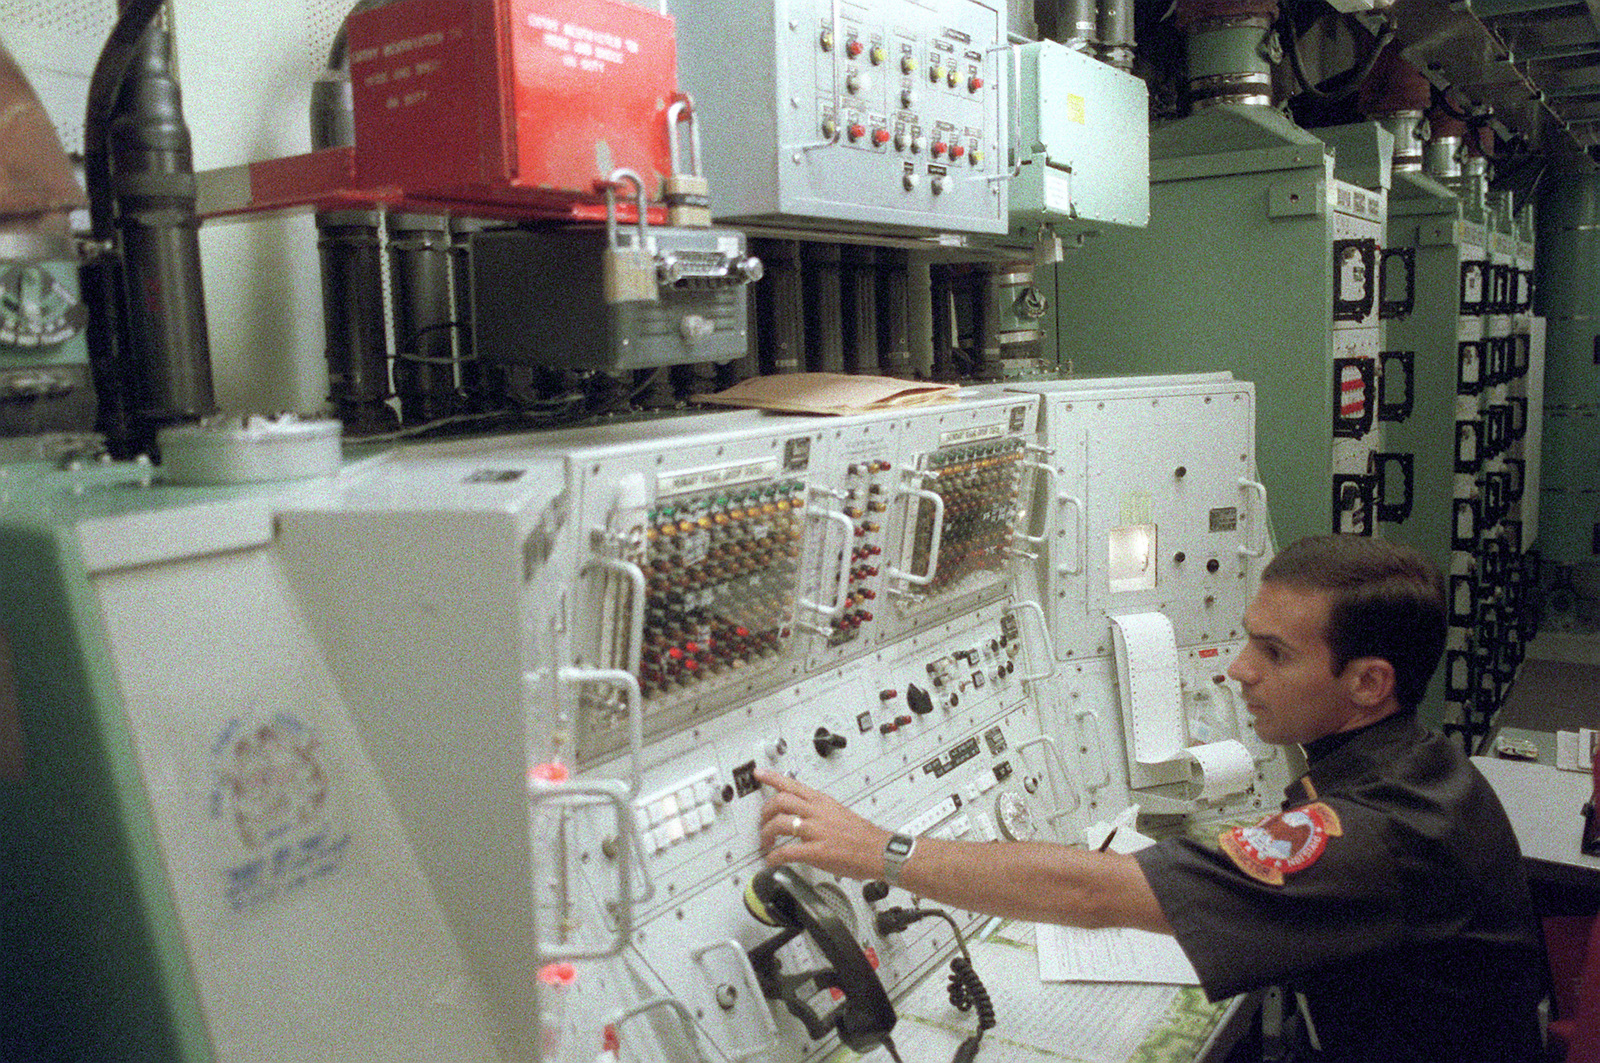 A member of the 321st Strategic Missile Wing works at a control panel inside a Minuteman III intercontinental ballistic missile silo